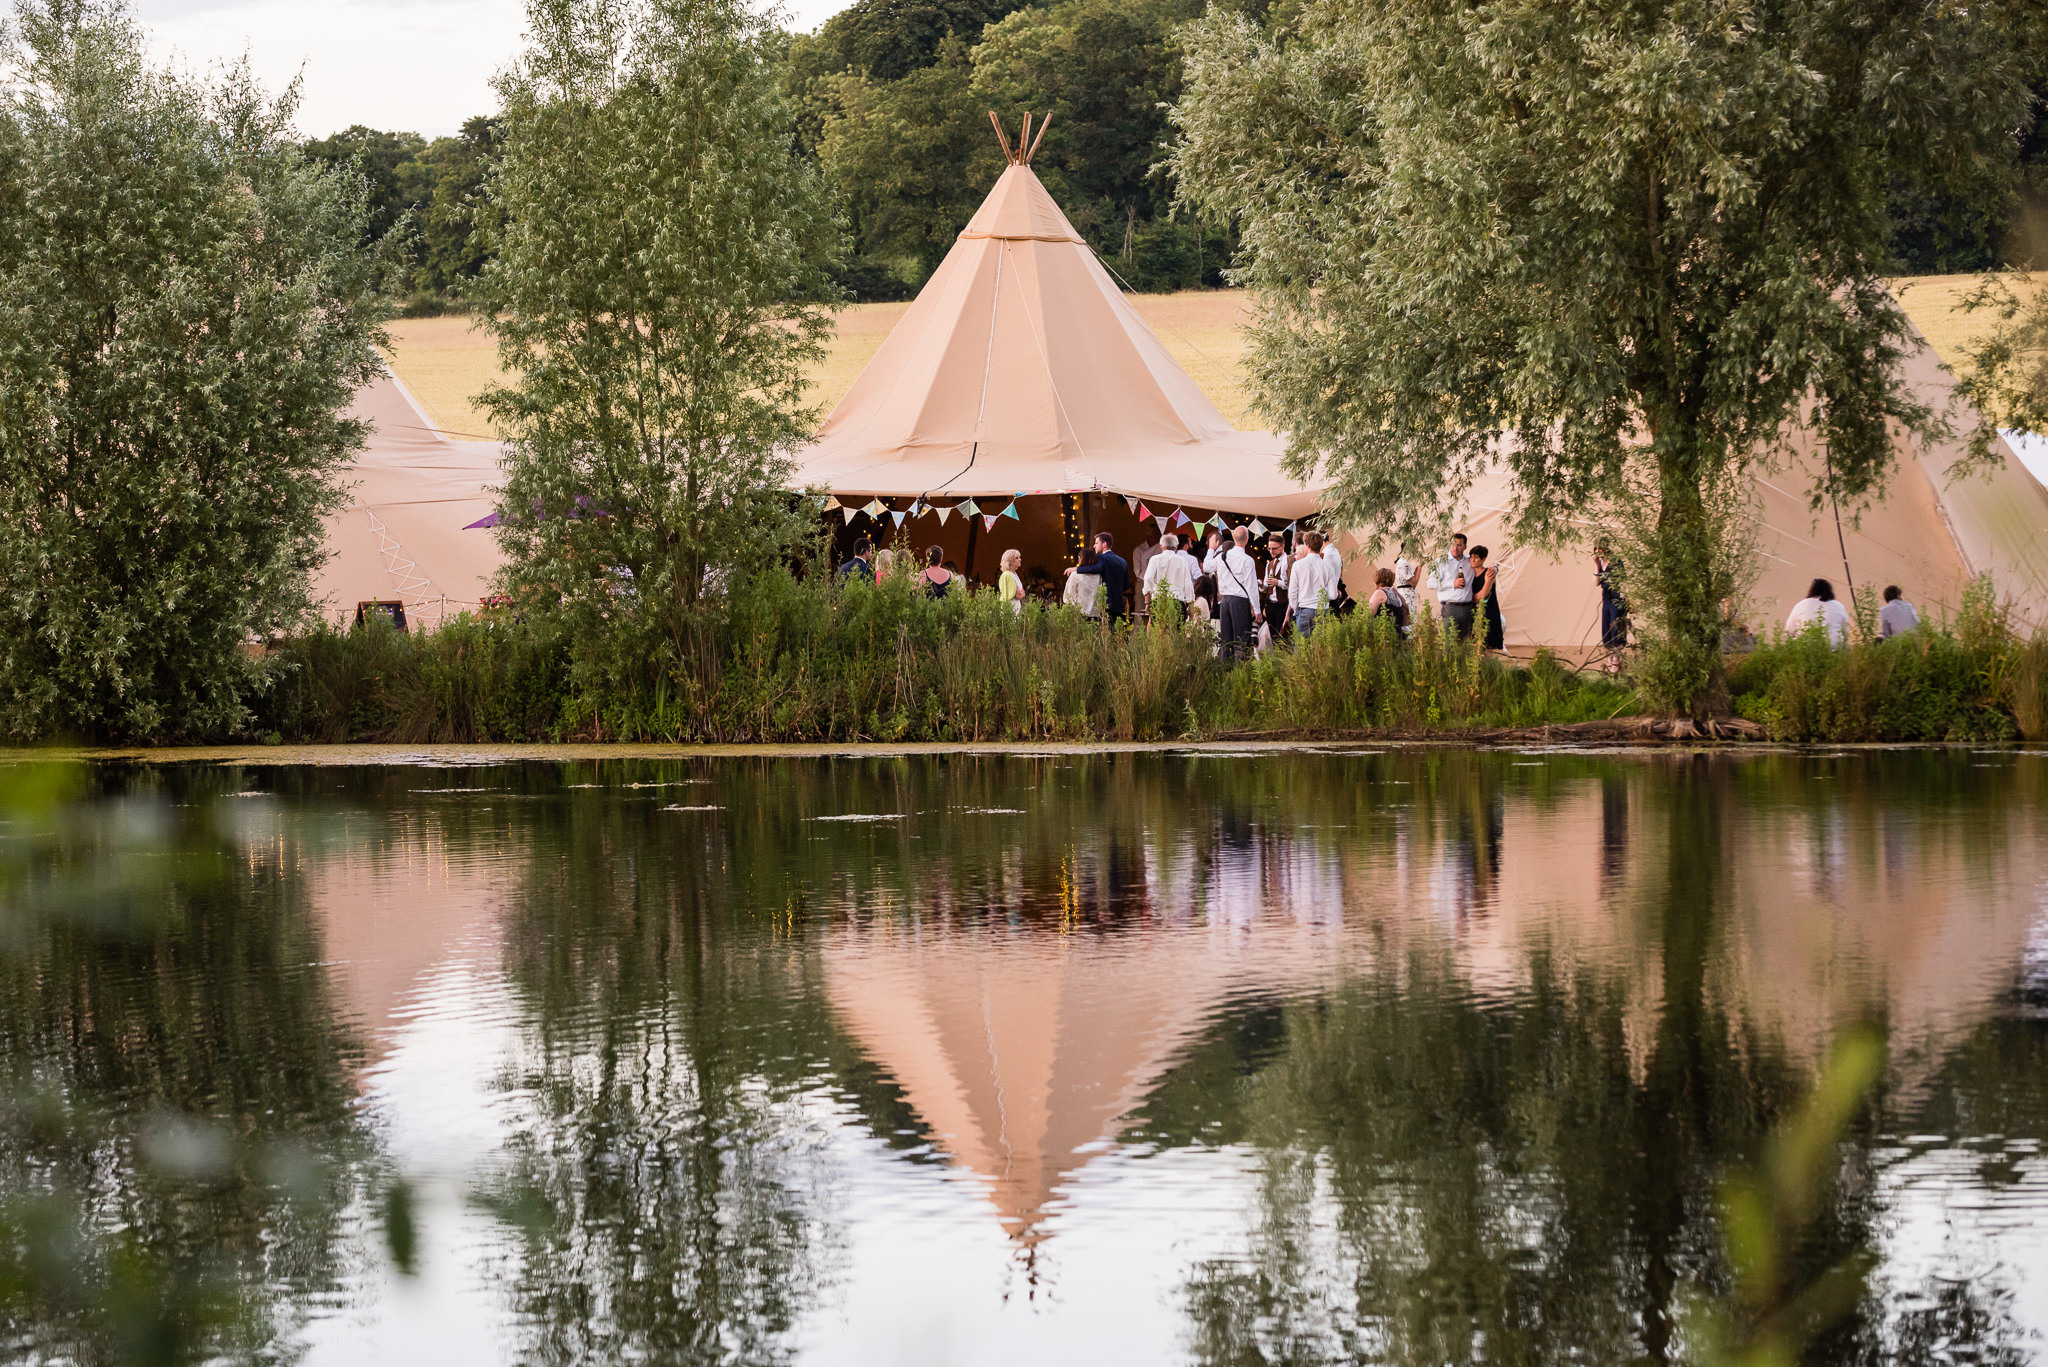 A reflection of the tipi in the lake